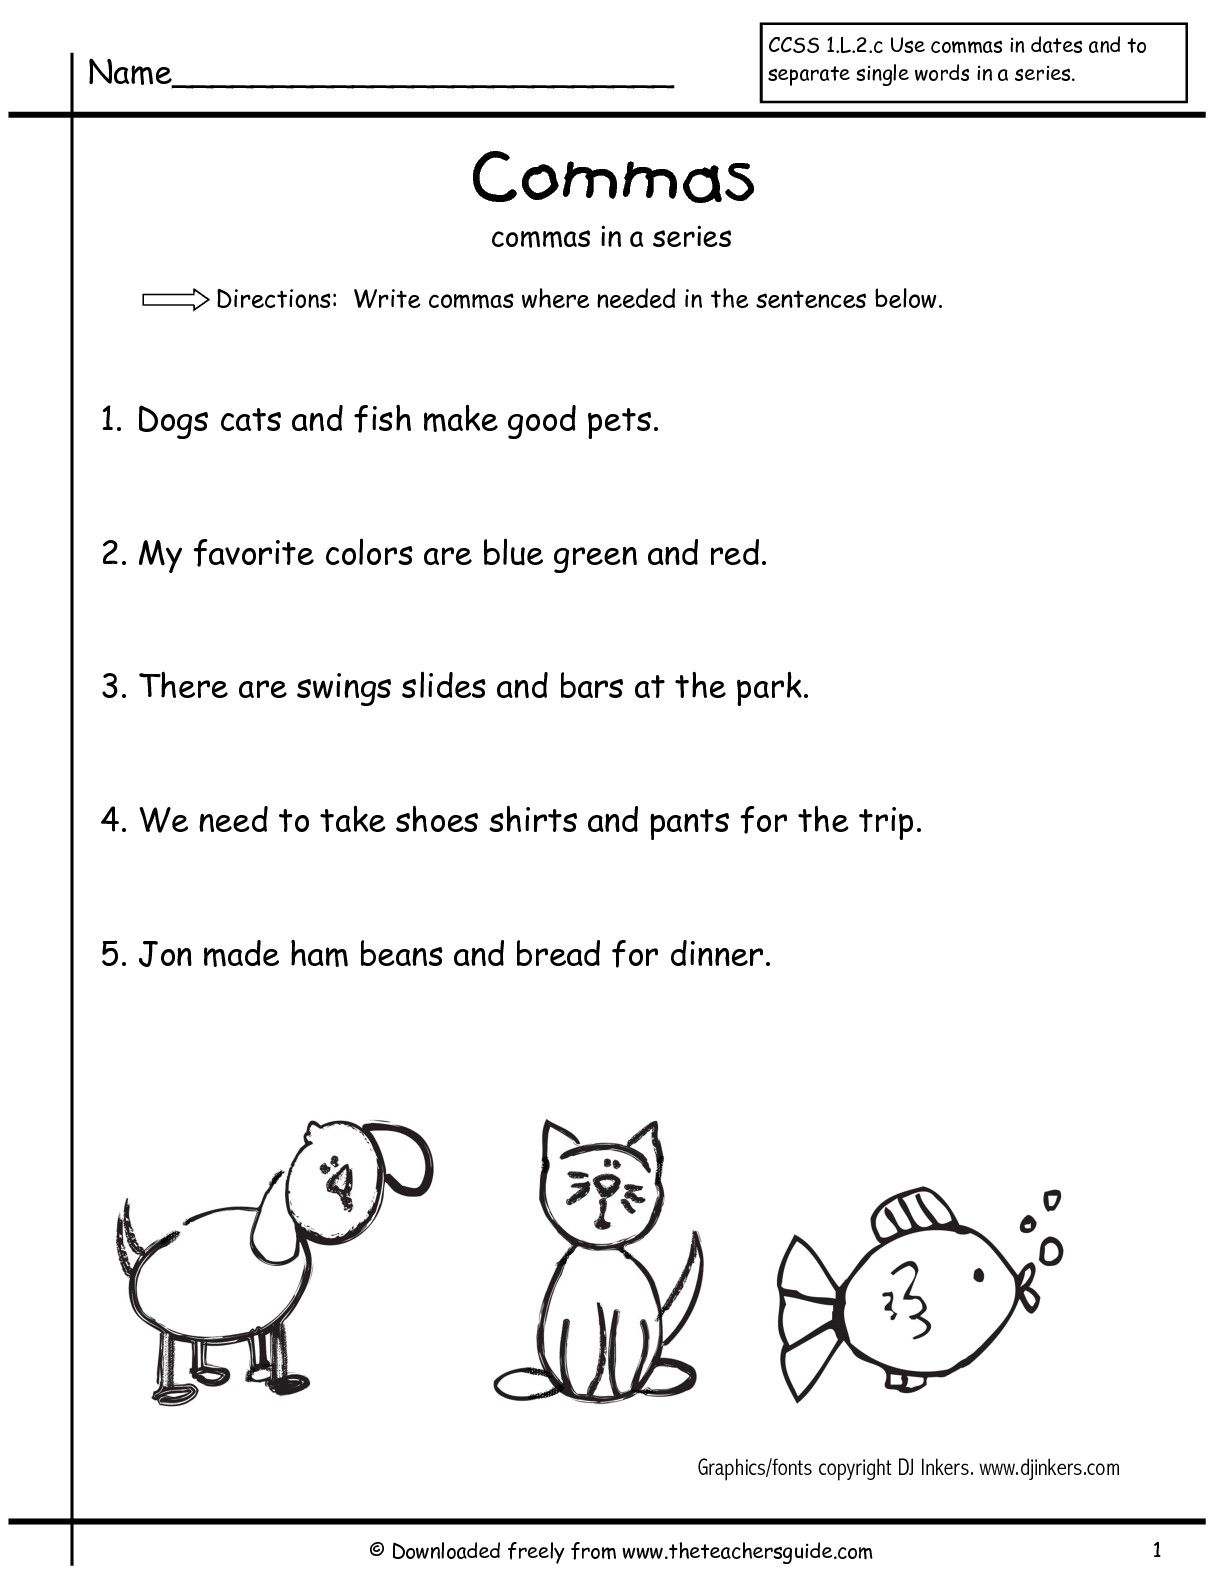 1st Grade Grammar Worksheets : Grammar worksheets commas in a series first grade free